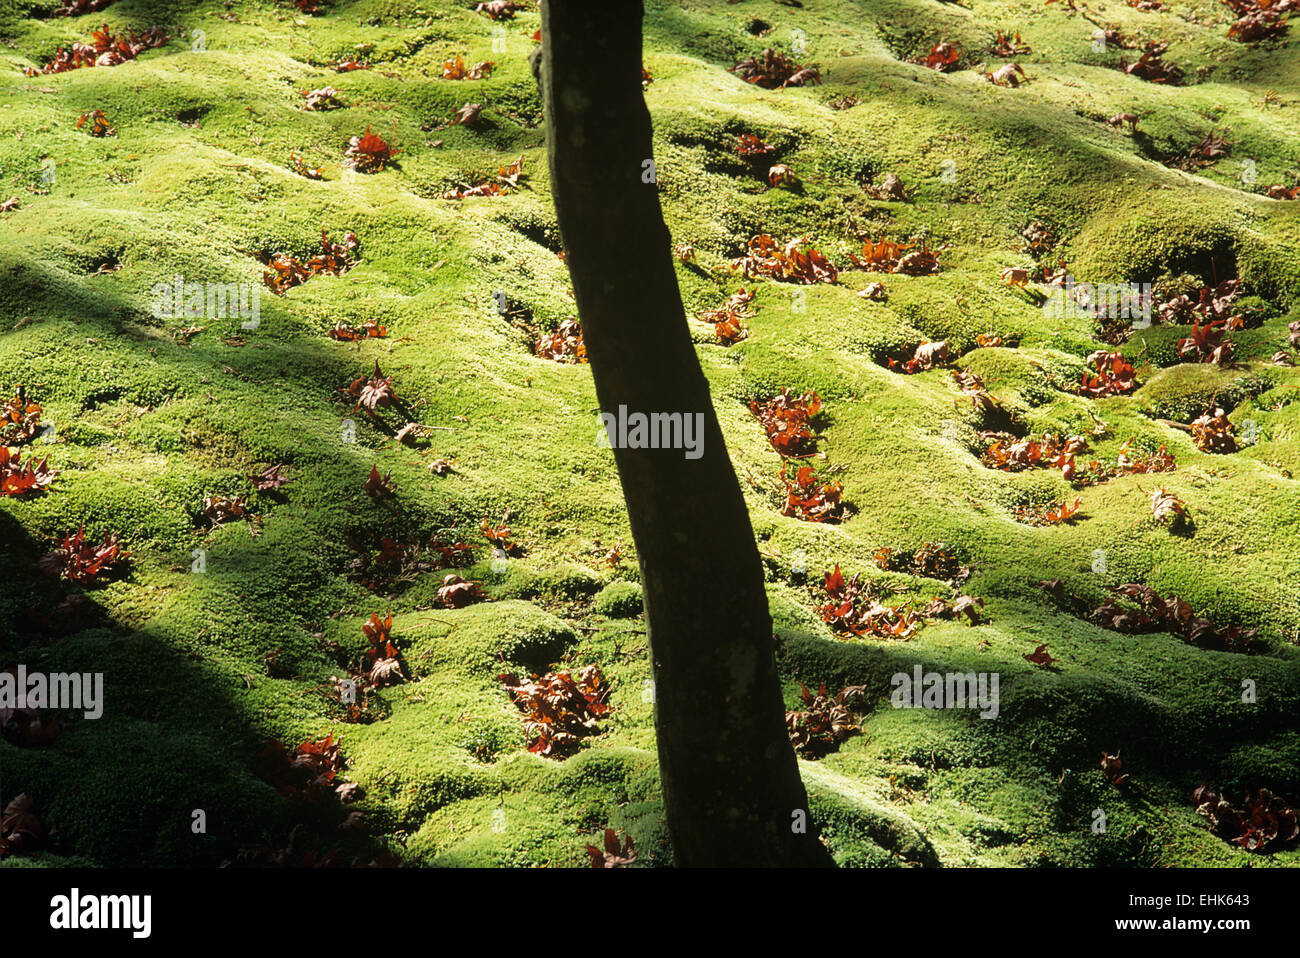 A vignette of some moss, leaves and tree trunks in the 900 year old garden of Saiho-ji in Arashiyama. - Stock Image